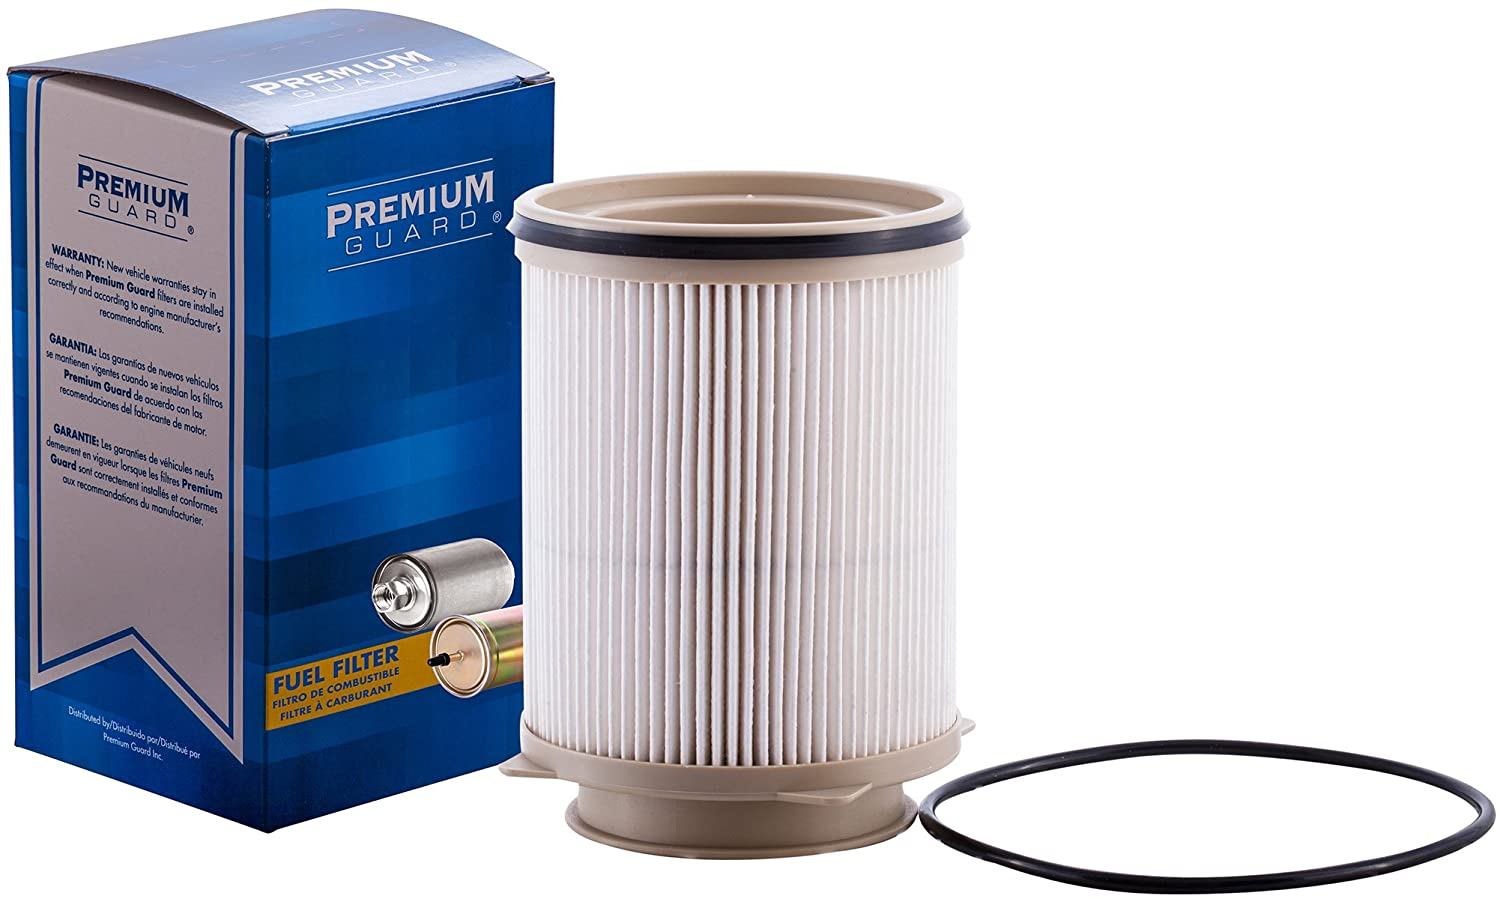 Amazon.com: Premium Guard DF6806 Diesel Fuel Filter | Fits 2018-2010 Dodge  Ram 2500, Ram 3500; 2017-2010 Ram 4500, Ram 5500: Automotive